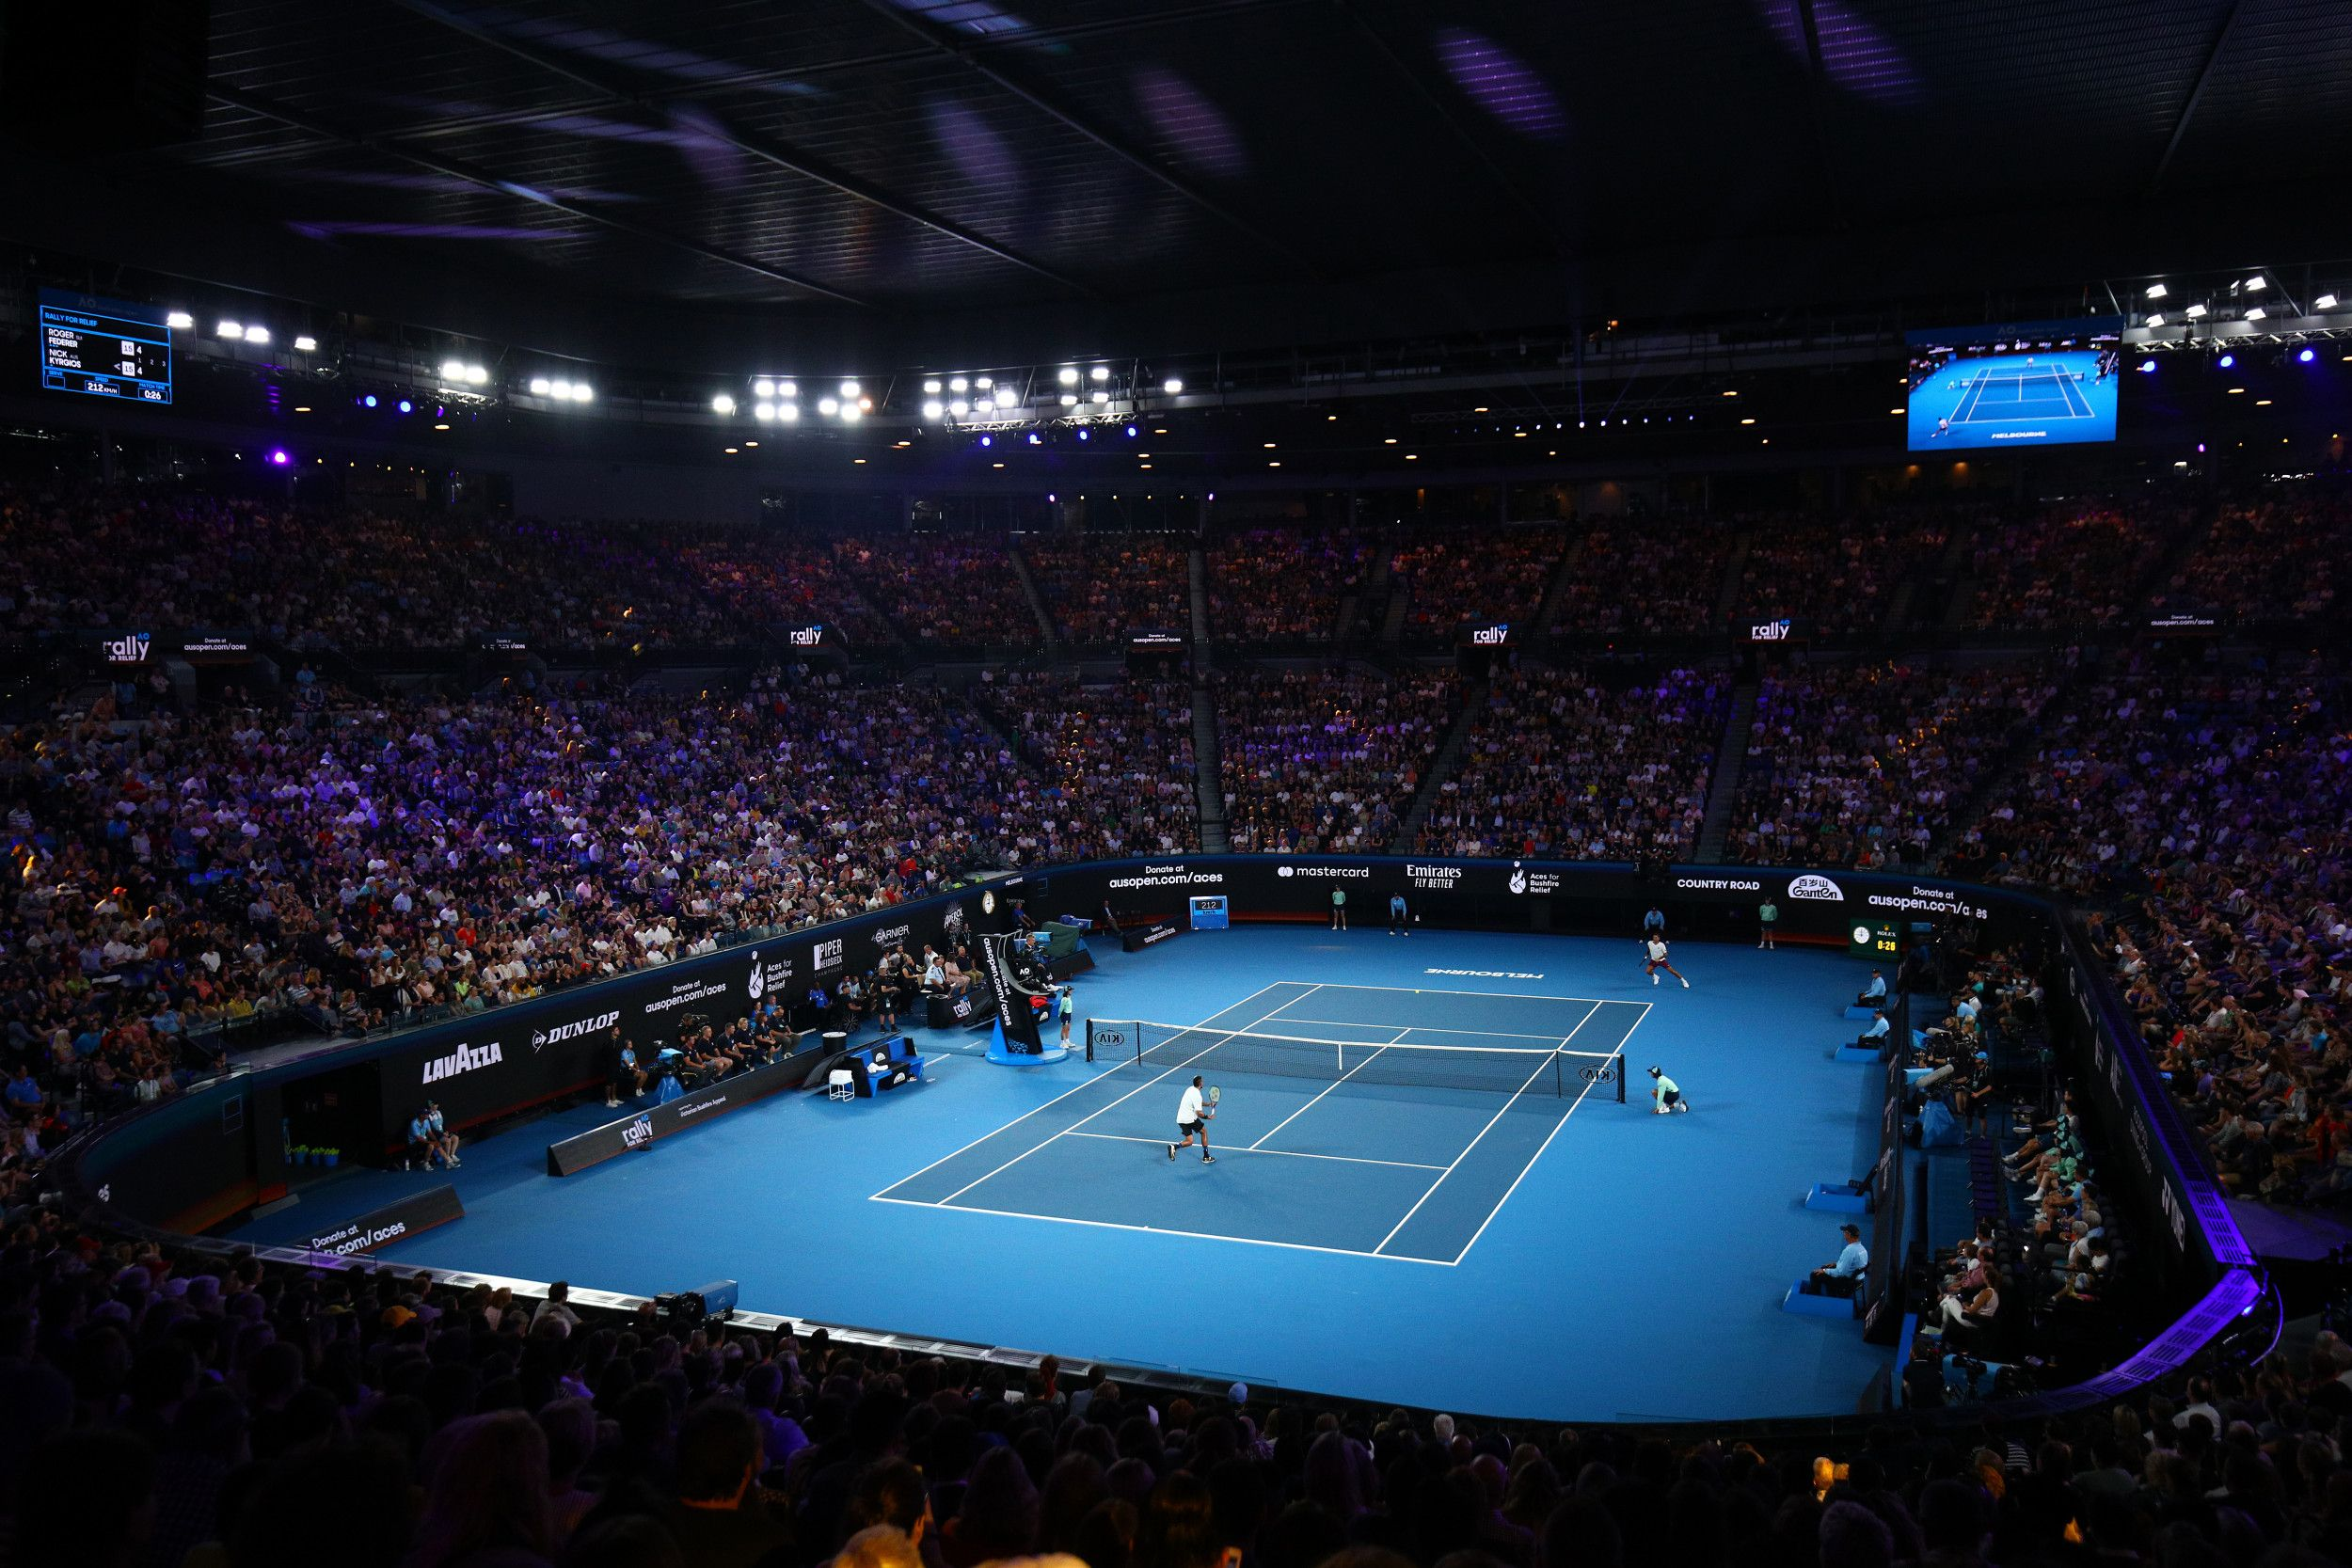 The world's best tennis players in Melbourne, Australia